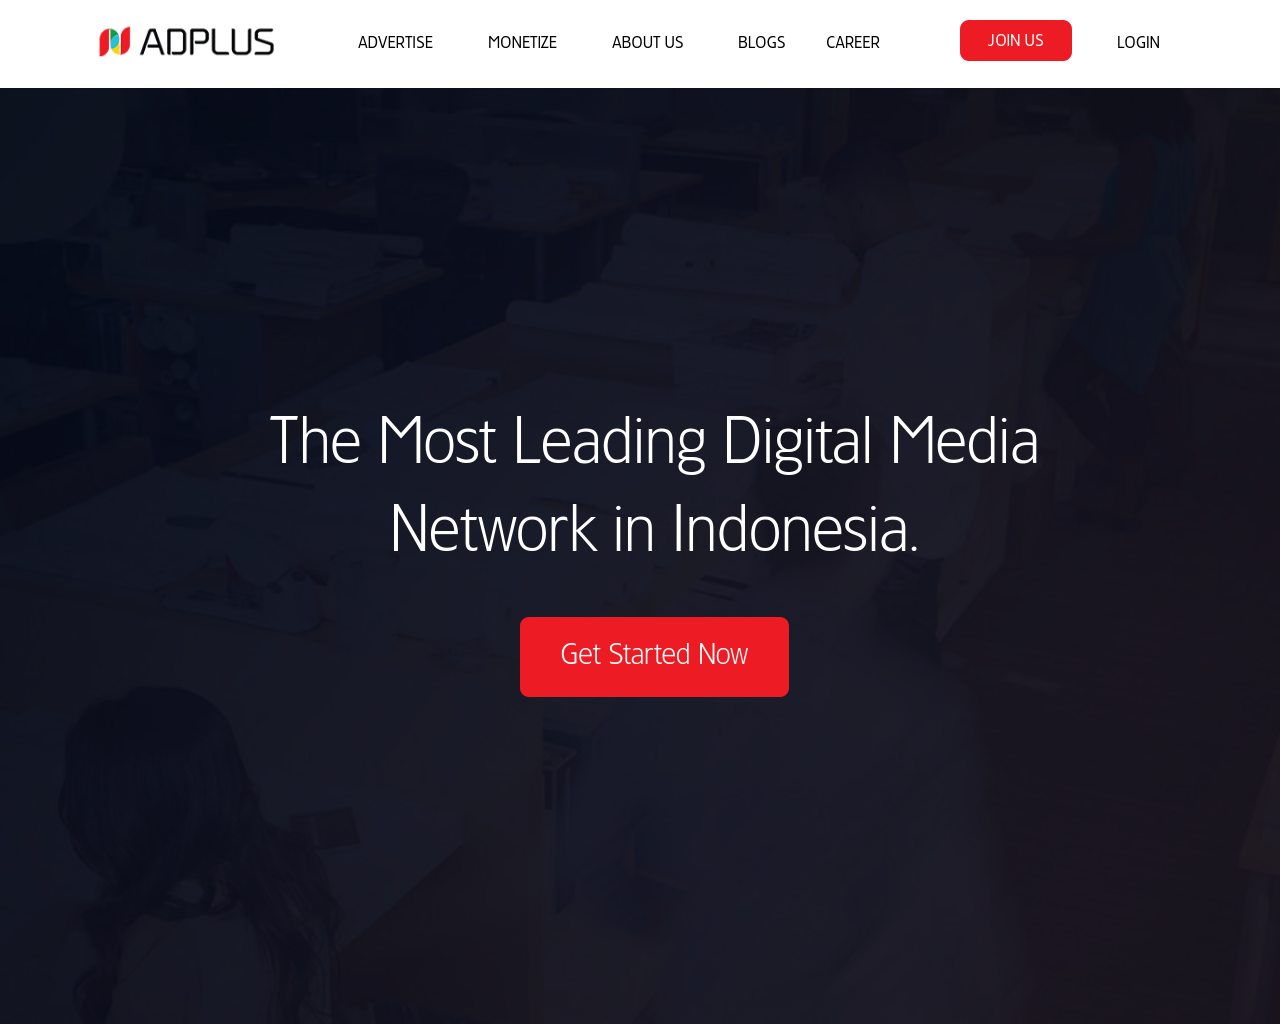 AdPlus-Advertising-Reviews-Pricing